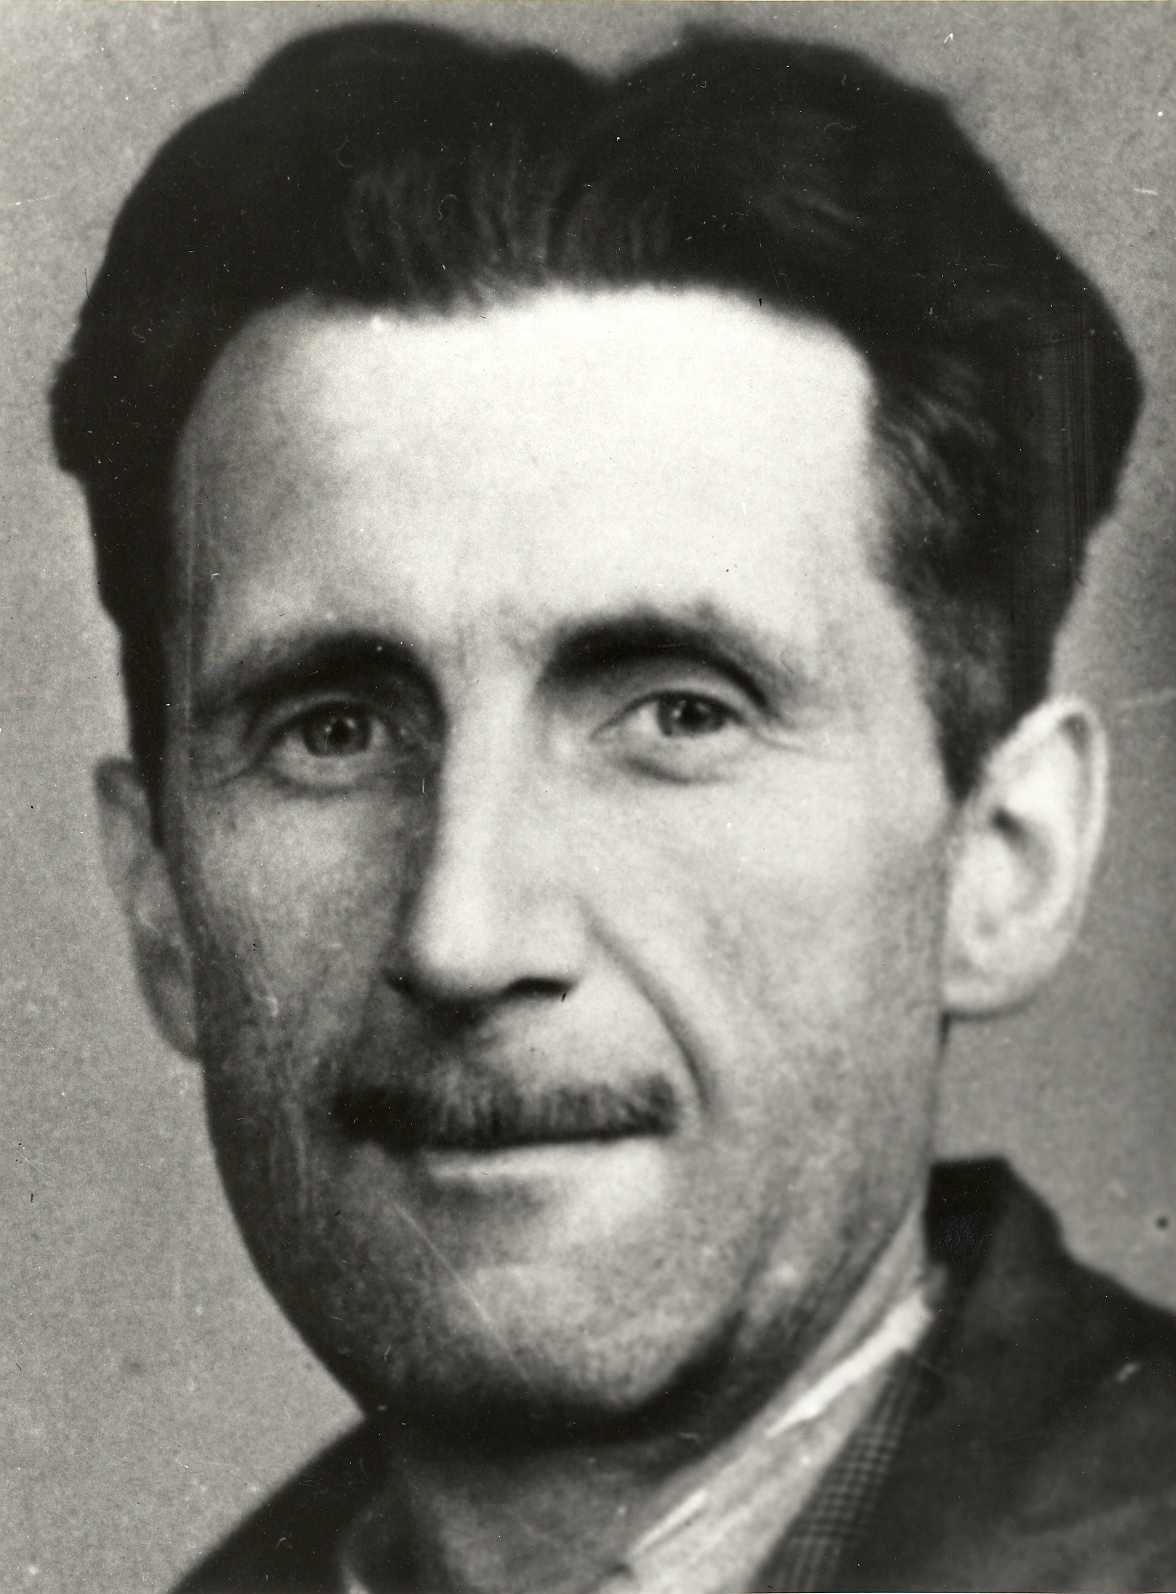 Orwell's [[press card]] portrait, 1943.